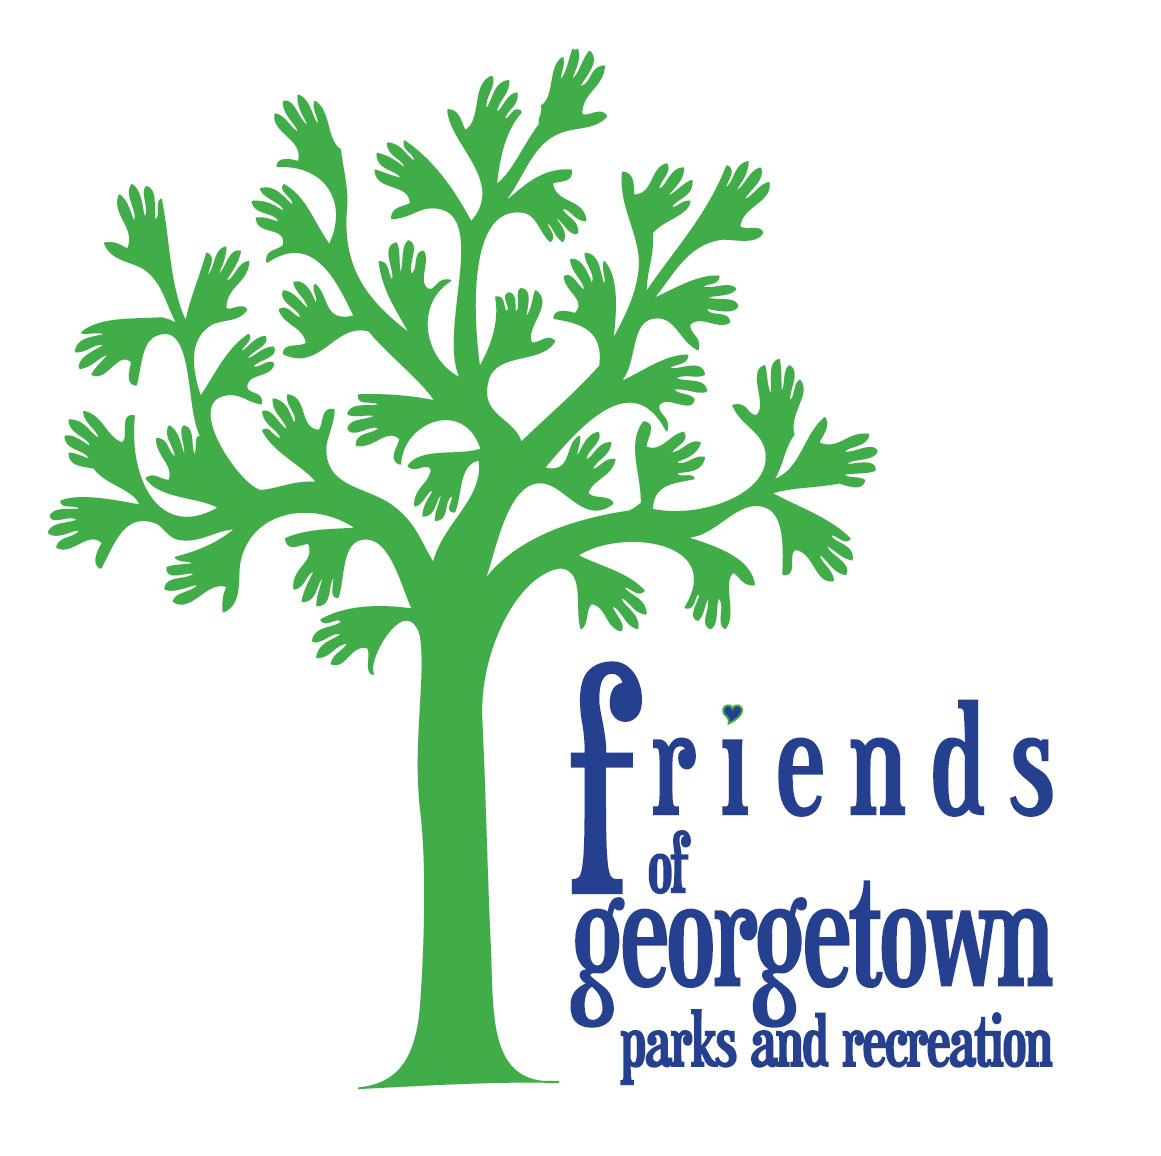 Friends of Georgetown Parks and Recreation